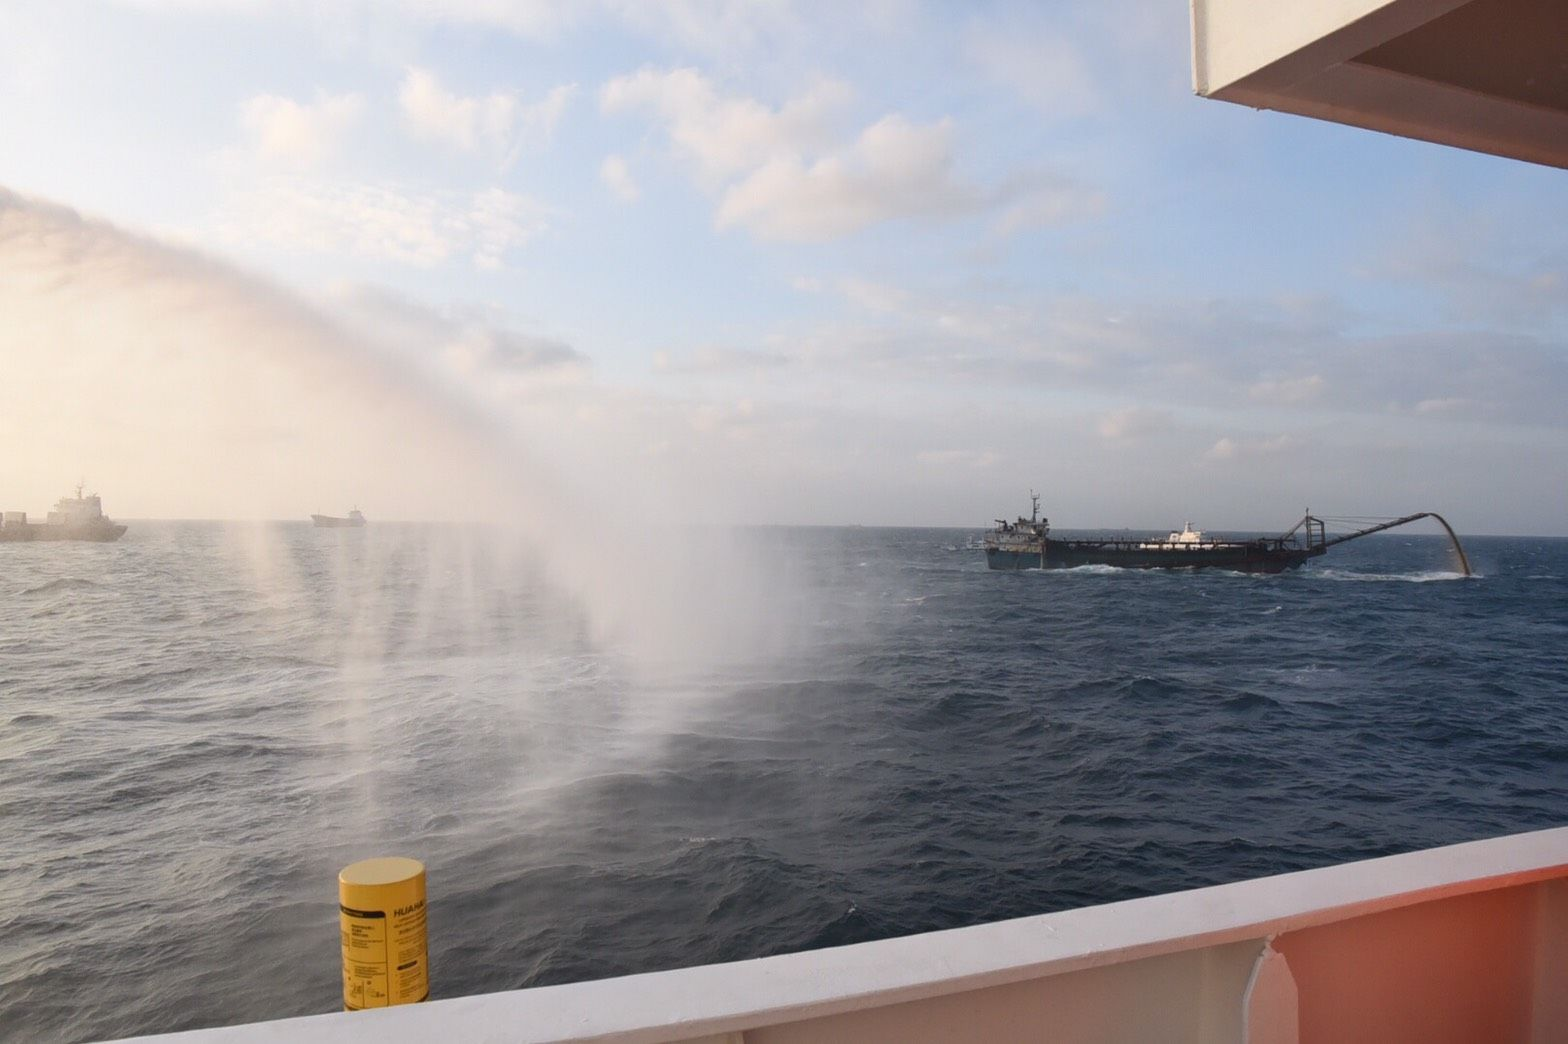 Coast Guards used water cannon to warn and deter these vessels.